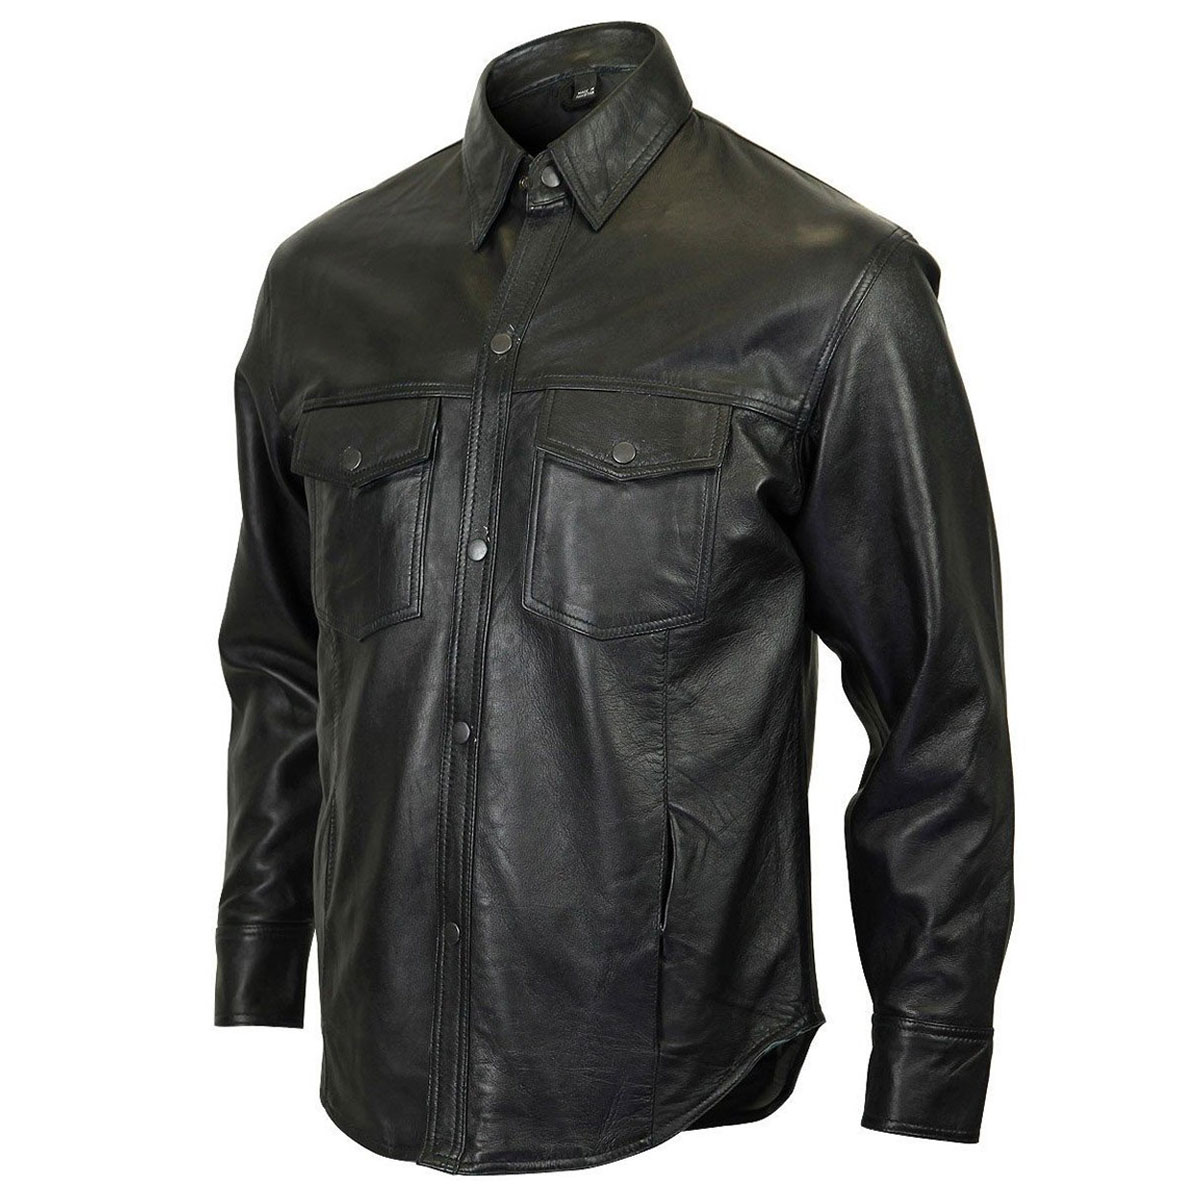 3fe766b76 Vance Leathers Men's Lambskin Black Leather Shirt - HMM504-5X